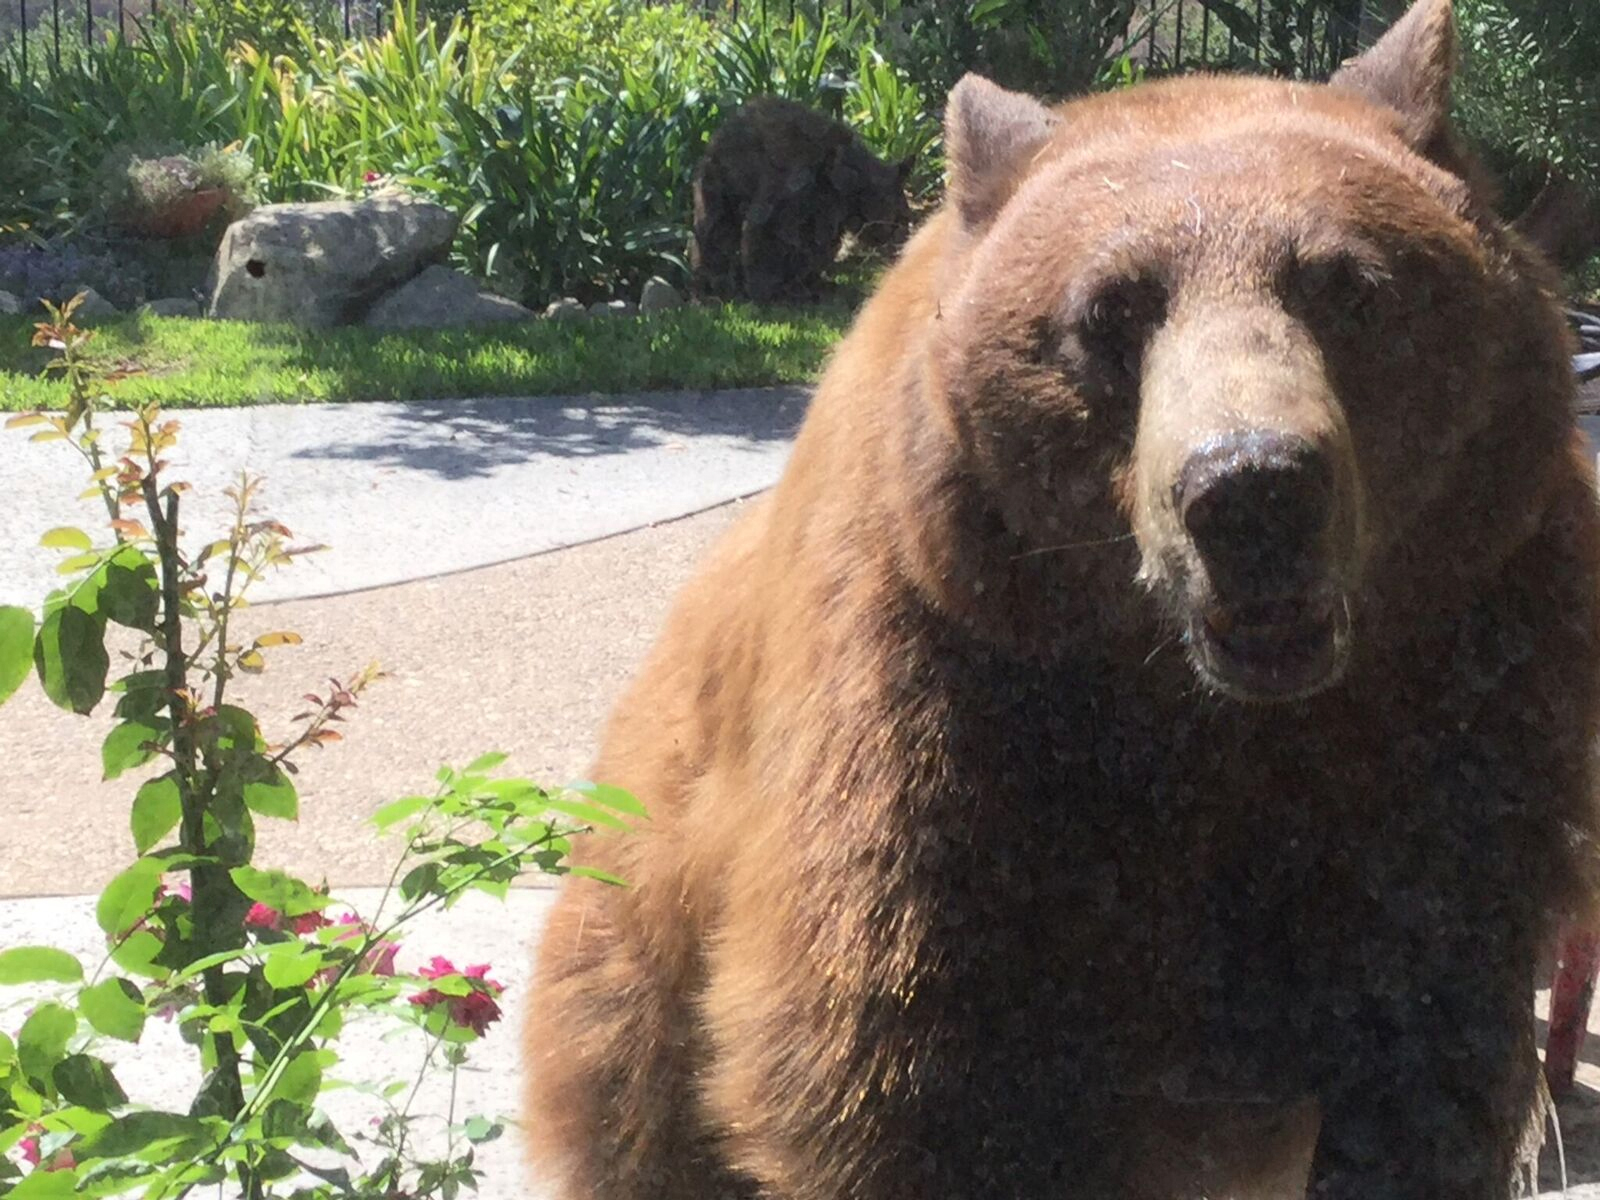 An adult bear was spotted in a Pasadena backyard on Aug. 2, 2016. (Credit: Sainty Wang and Carlos Chavez)